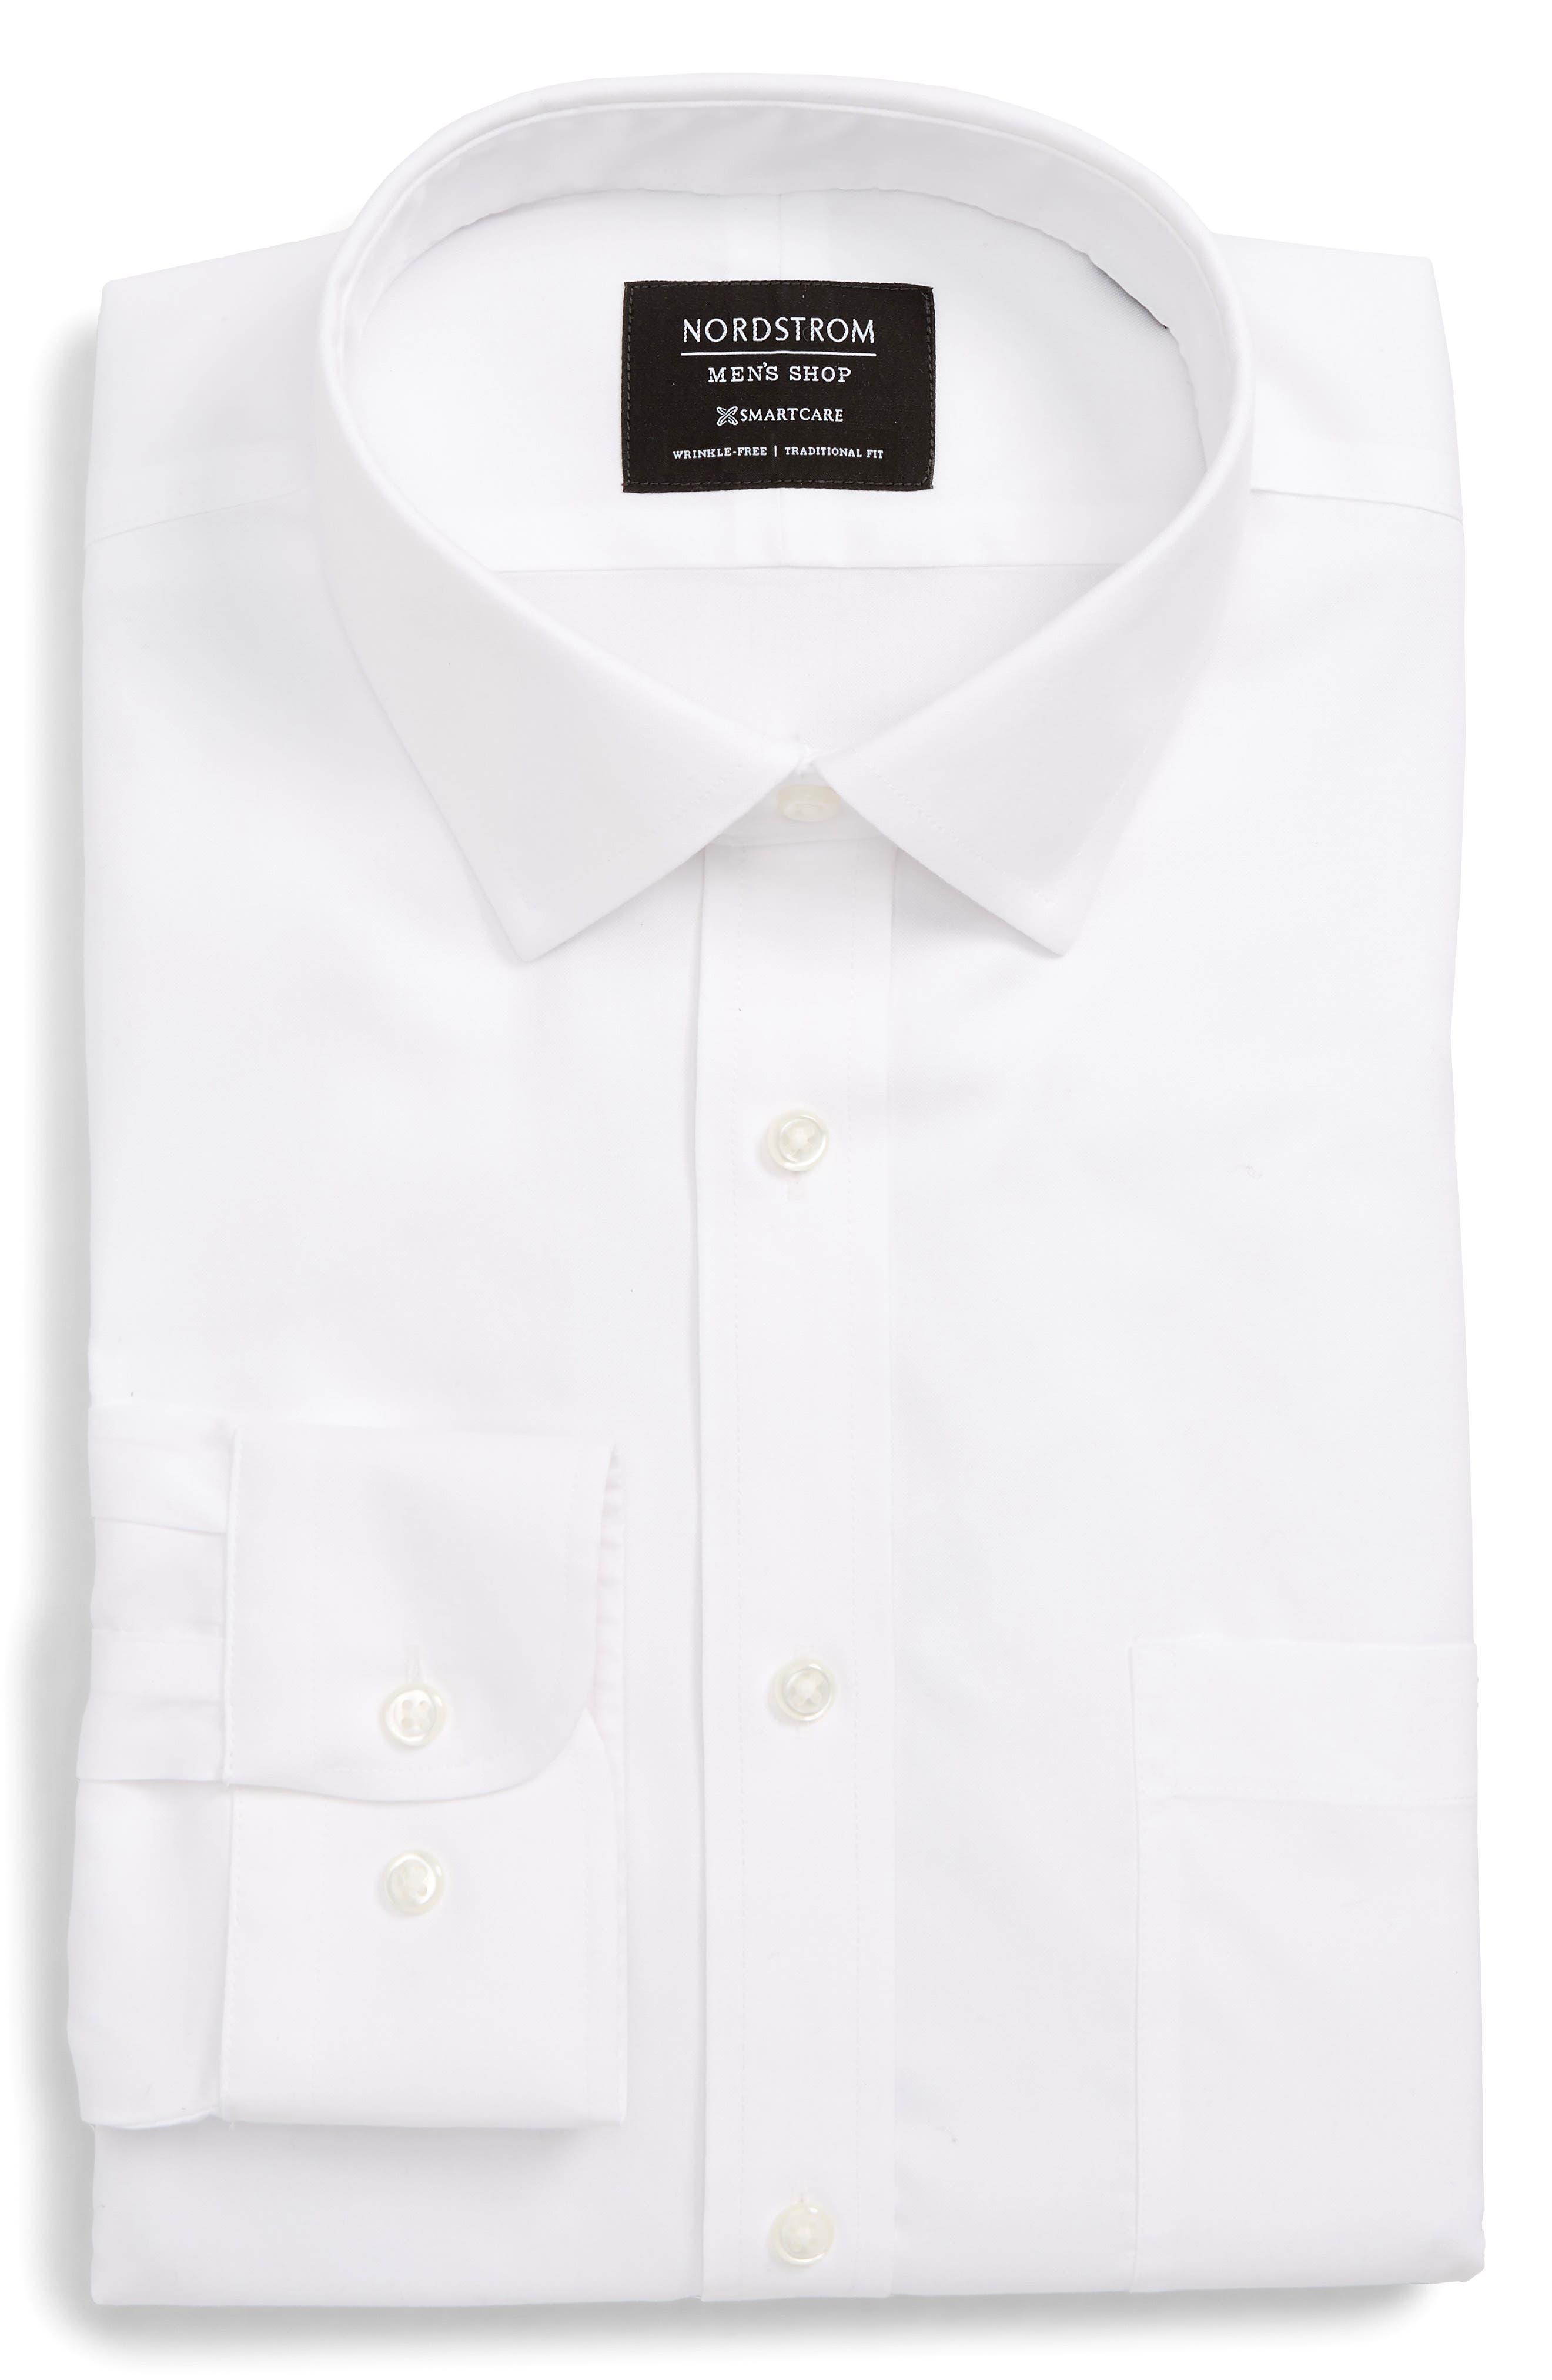 Nordstrom Shop Smartcare(TM) Traditional Fit Dress Shirt - White